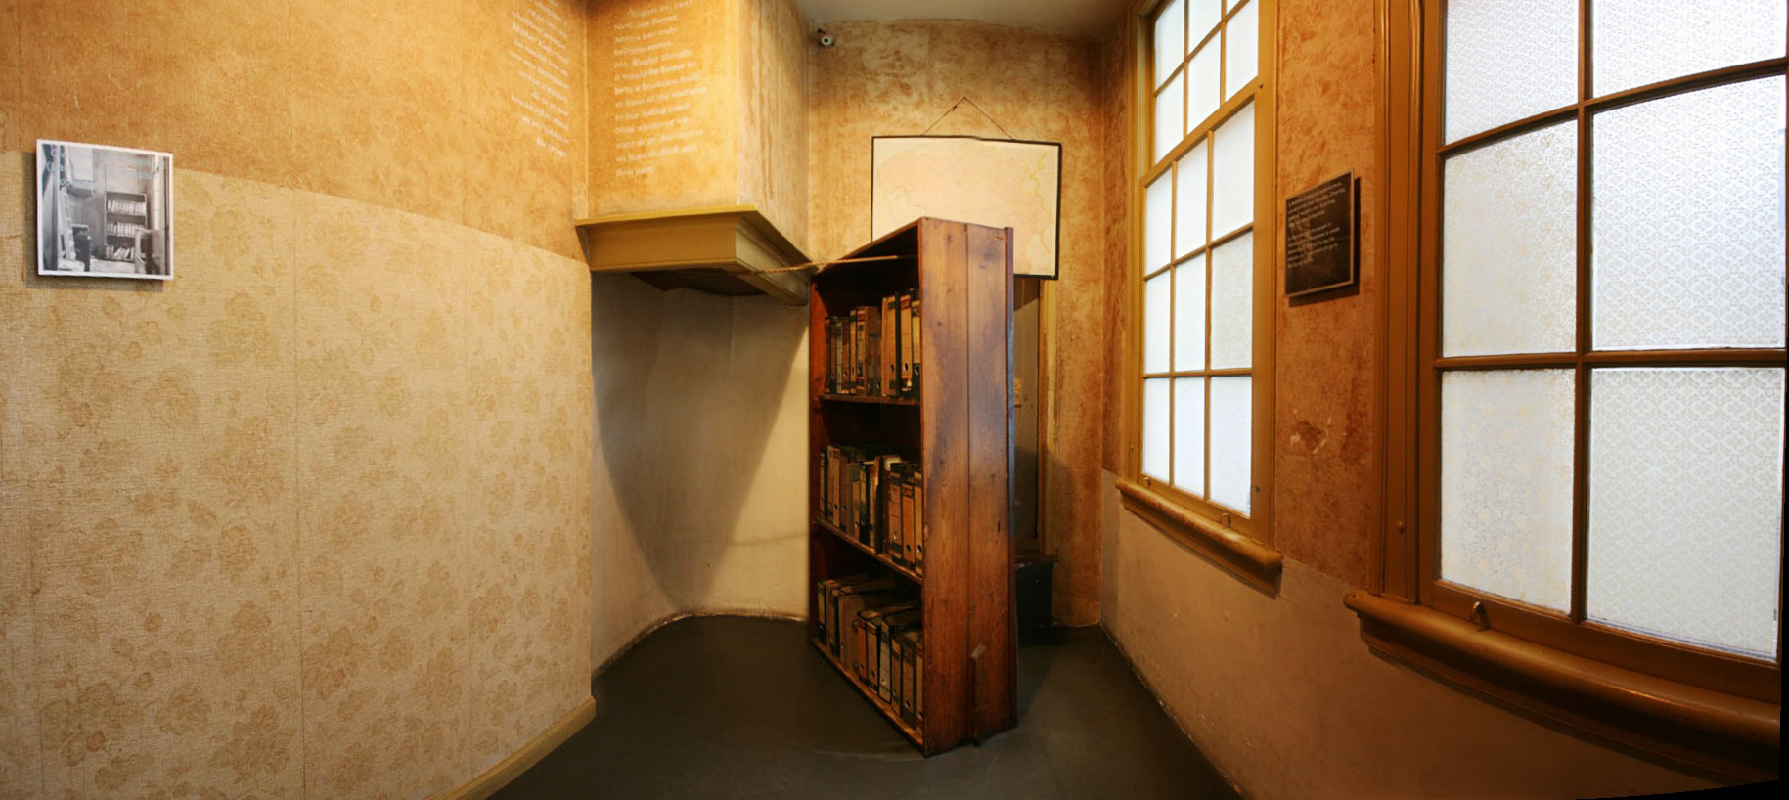 anne-frank-house - The Golden Scope